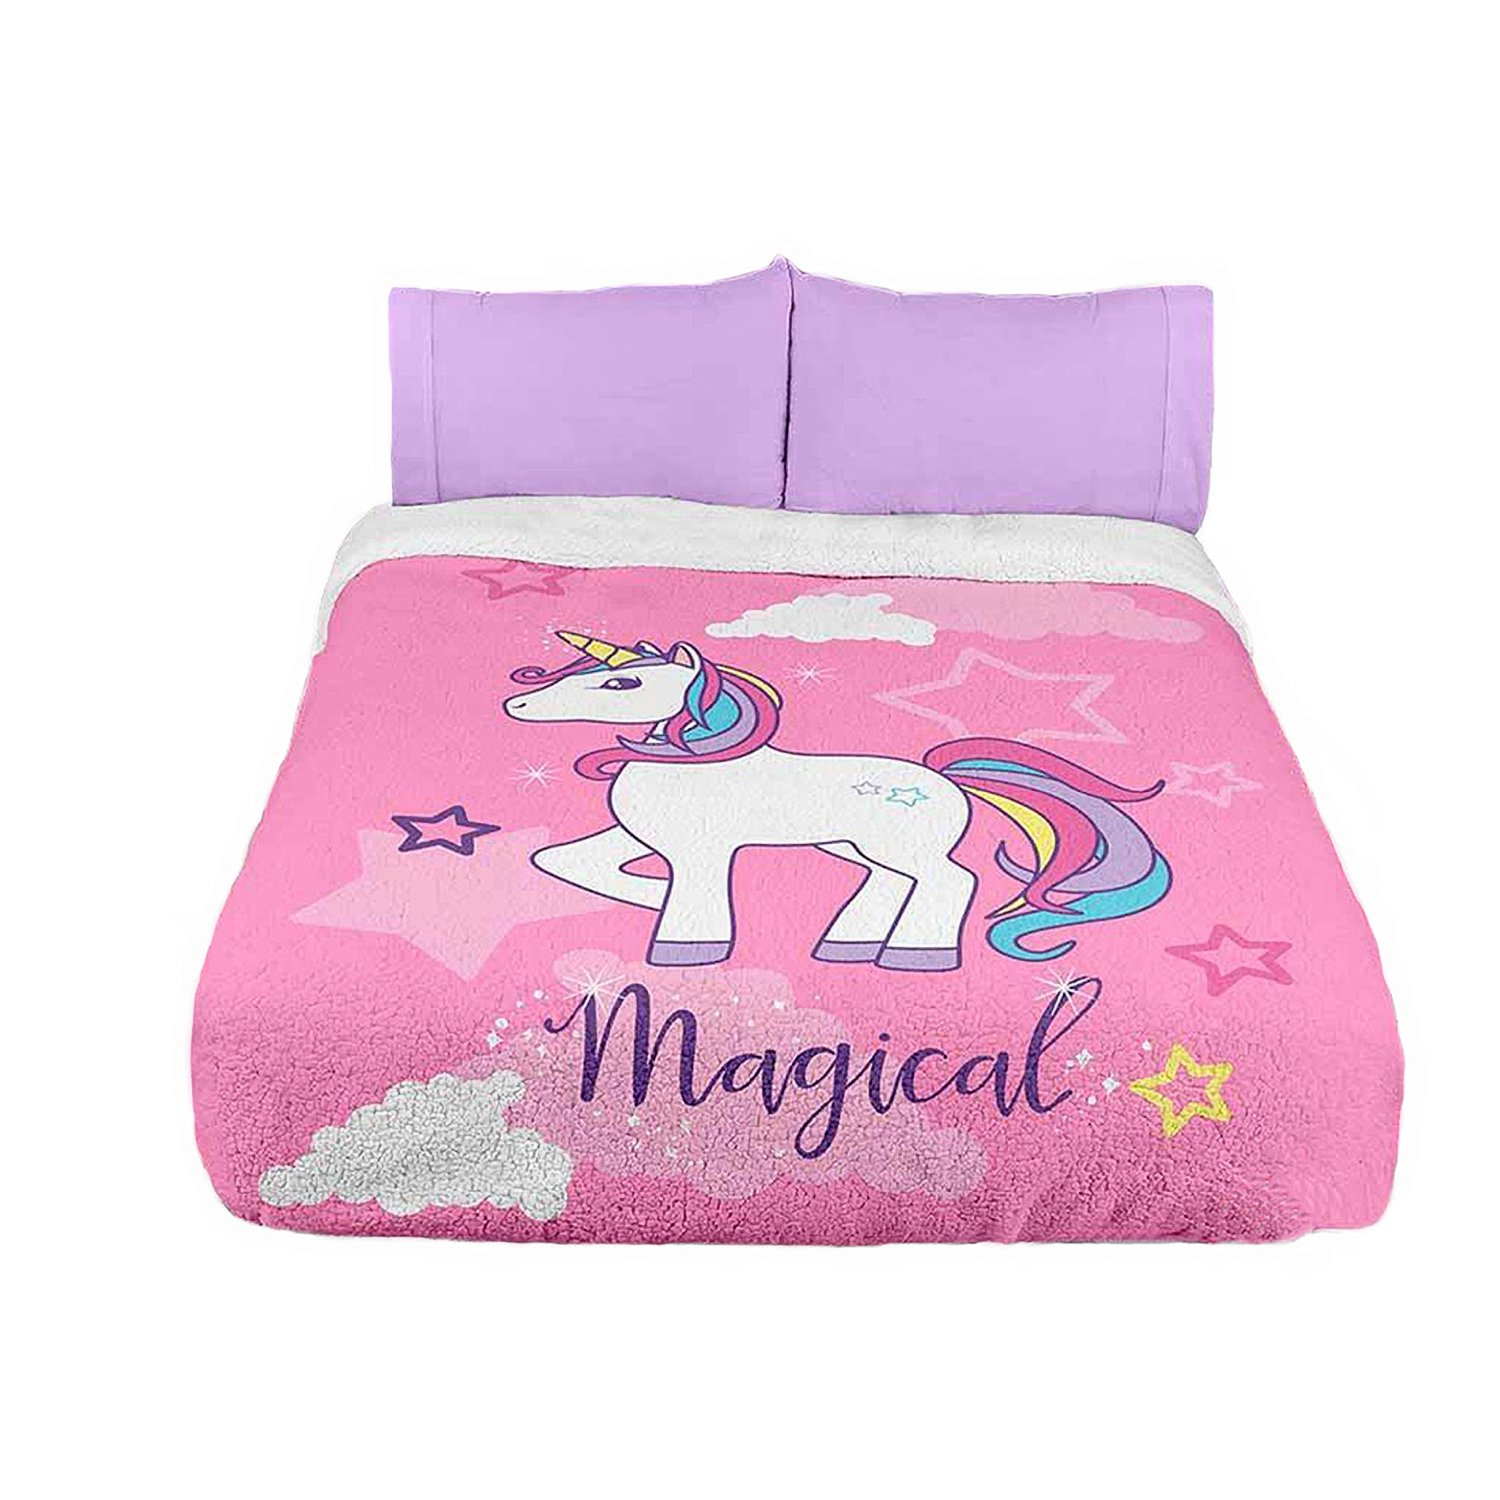 UNICORN TEENS GIRLS BLANKET WITH SHERPA VERY SOFTY THICK AND WARM 1 PCS FULL SIZE